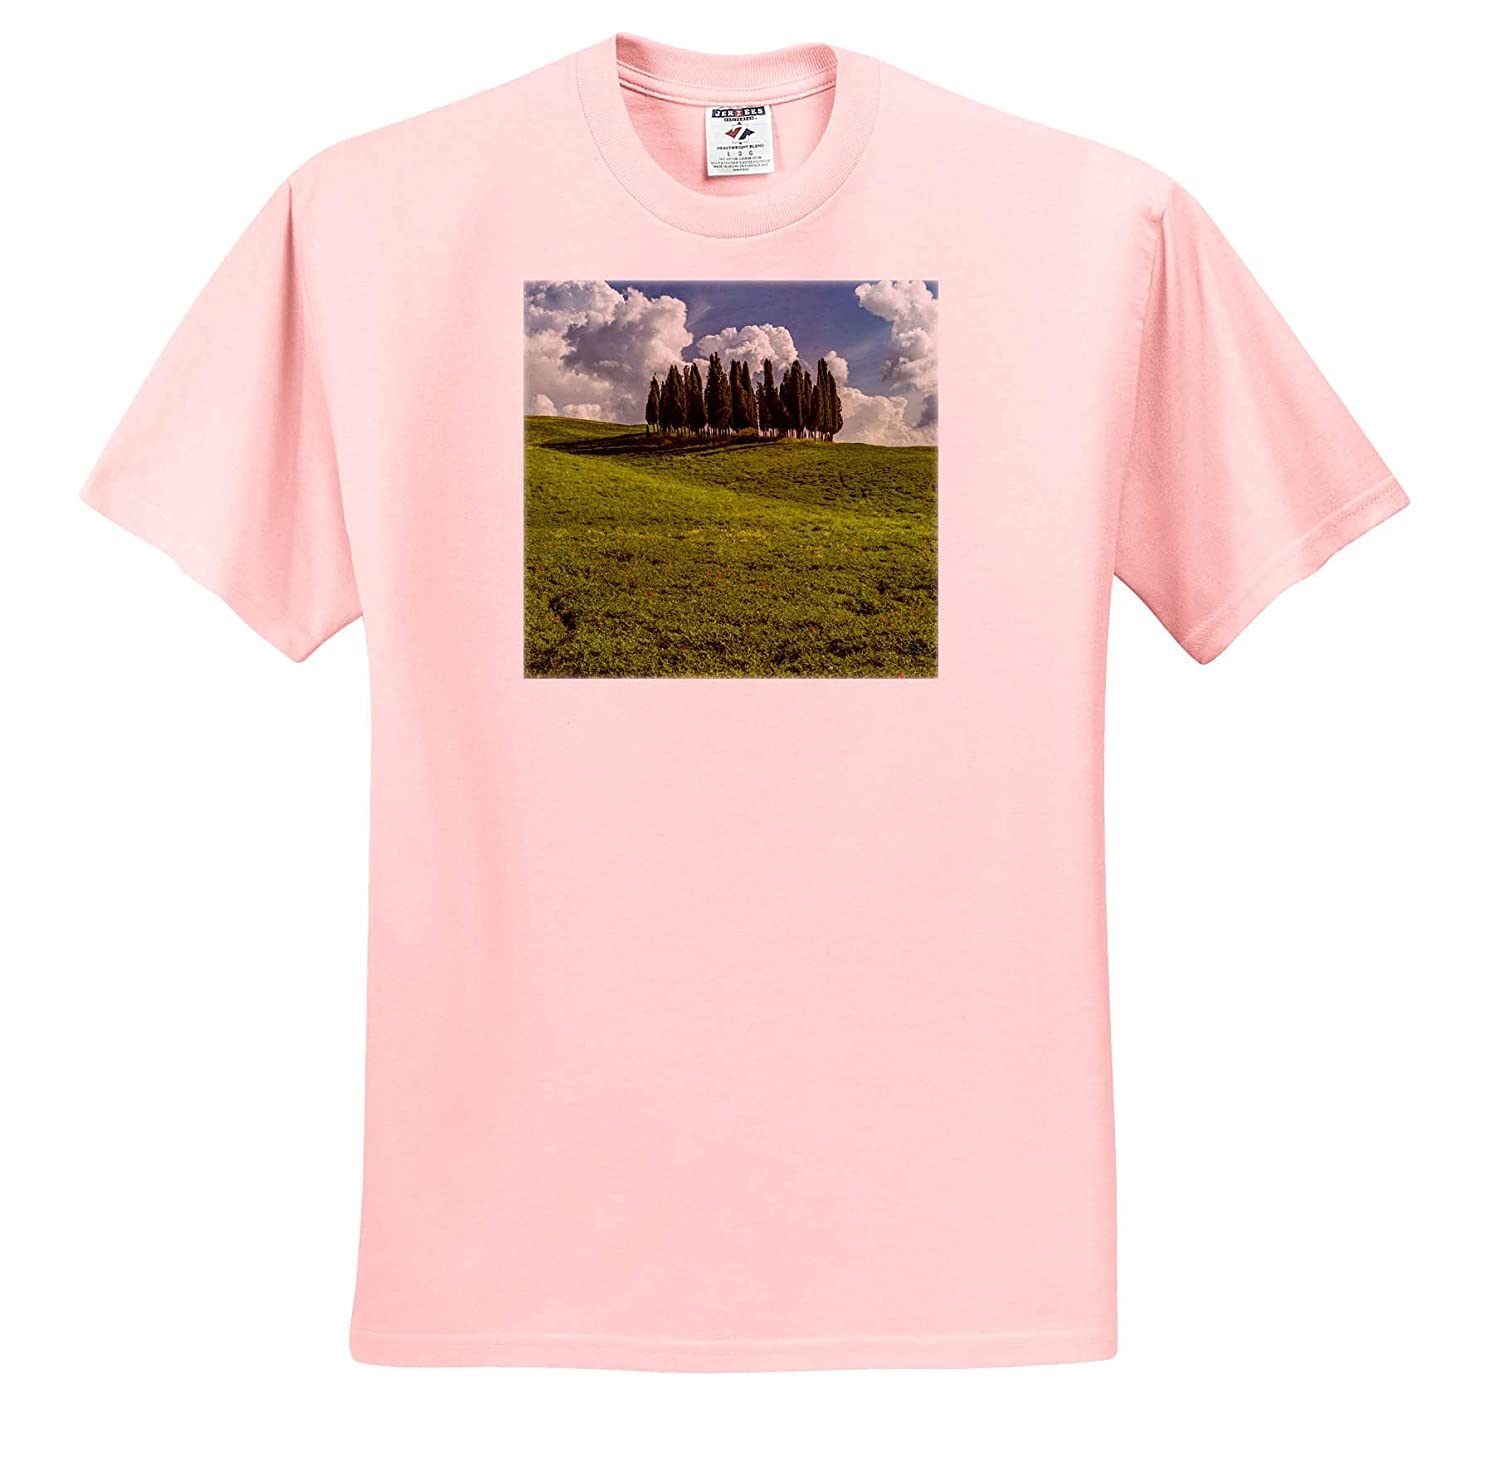 ts/_313709 Tuscany Adult T-Shirt XL 3dRose Danita Delimont Italy Tuscany Pines on a Hillside